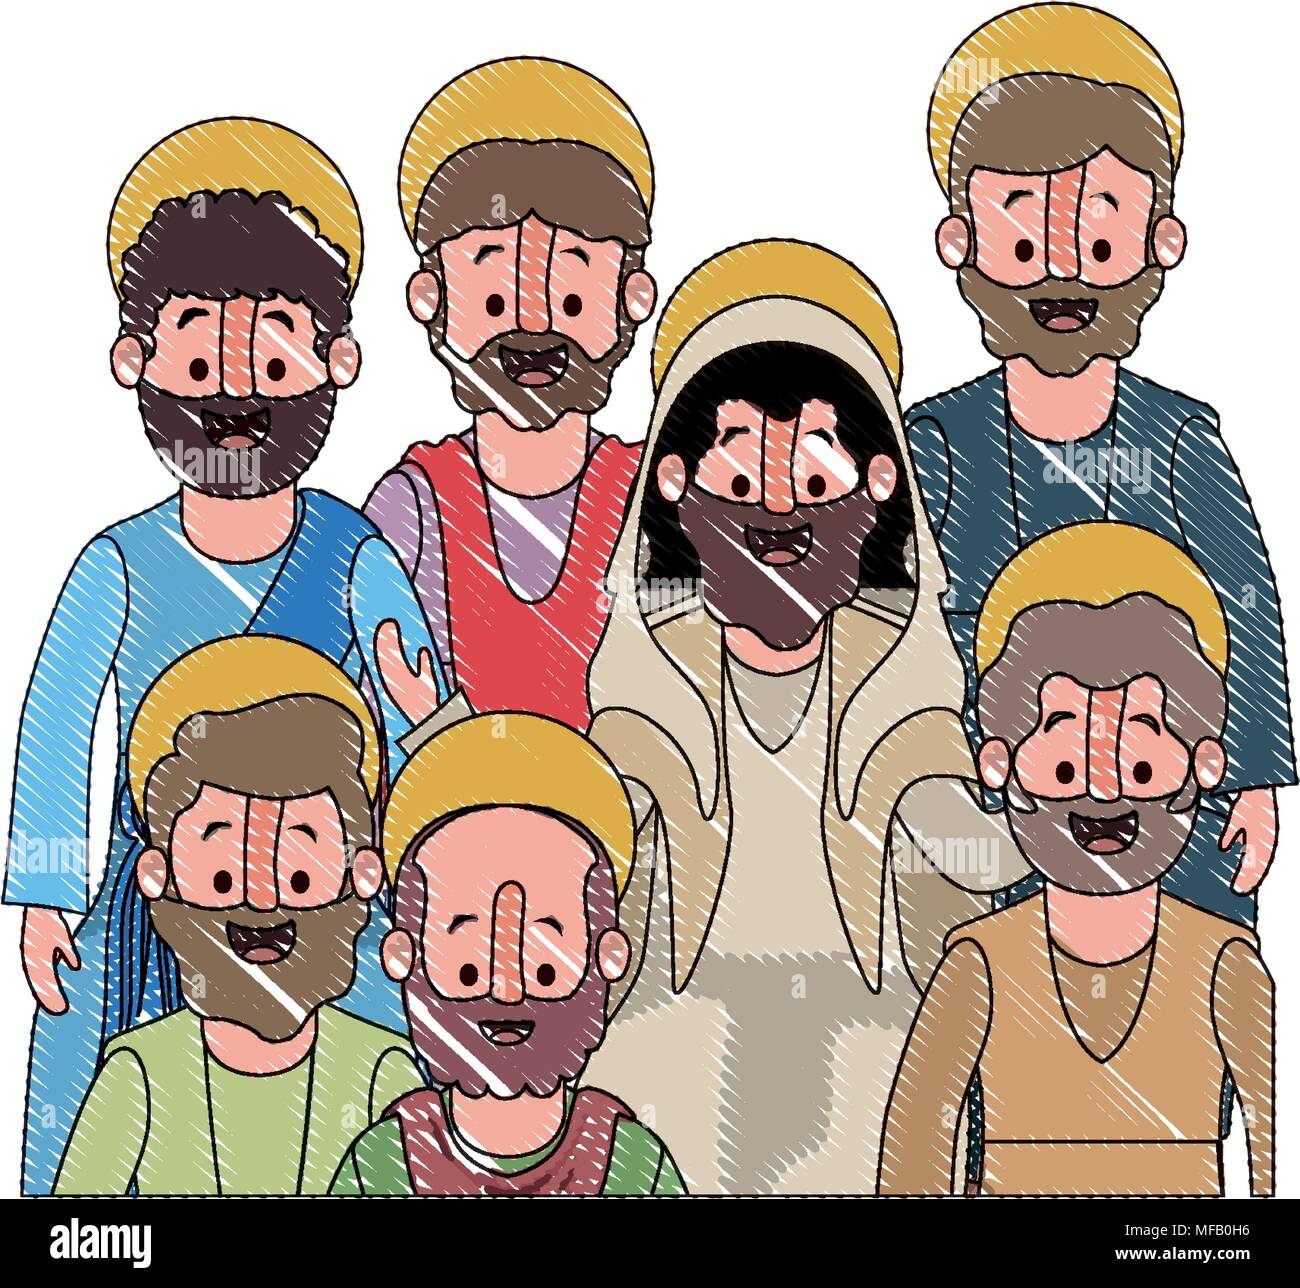 apostles group of Jesus with halo character - Stock Image